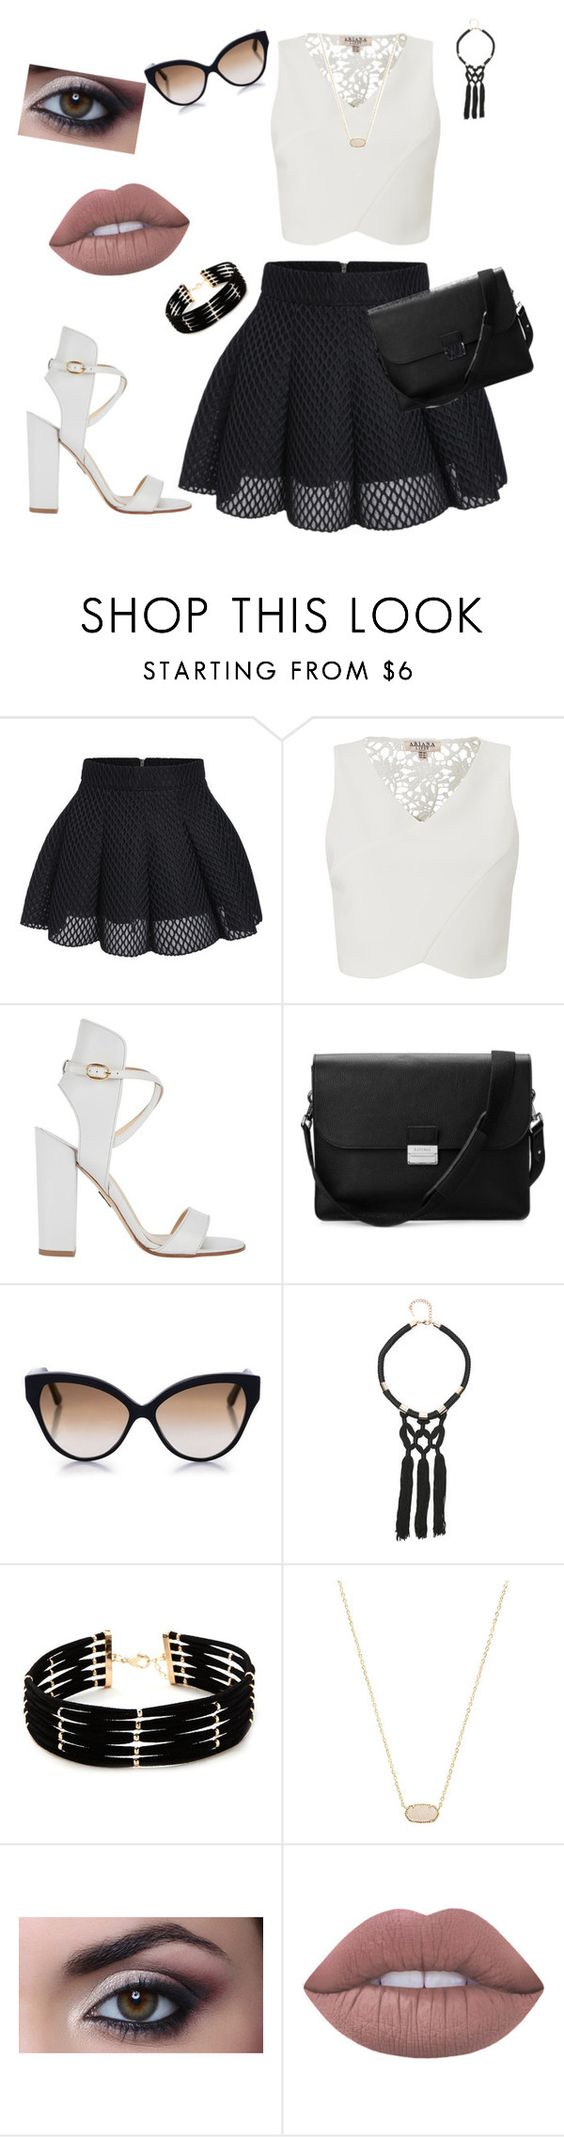 """""""schwarz und weiß"""" by mara-velisek on Polyvore featuring Lipsy, Paul Andrew, Aspinal of London, Cutler and Gross, Bebe, Forever 21, Kendra Scott and Lime Crime"""